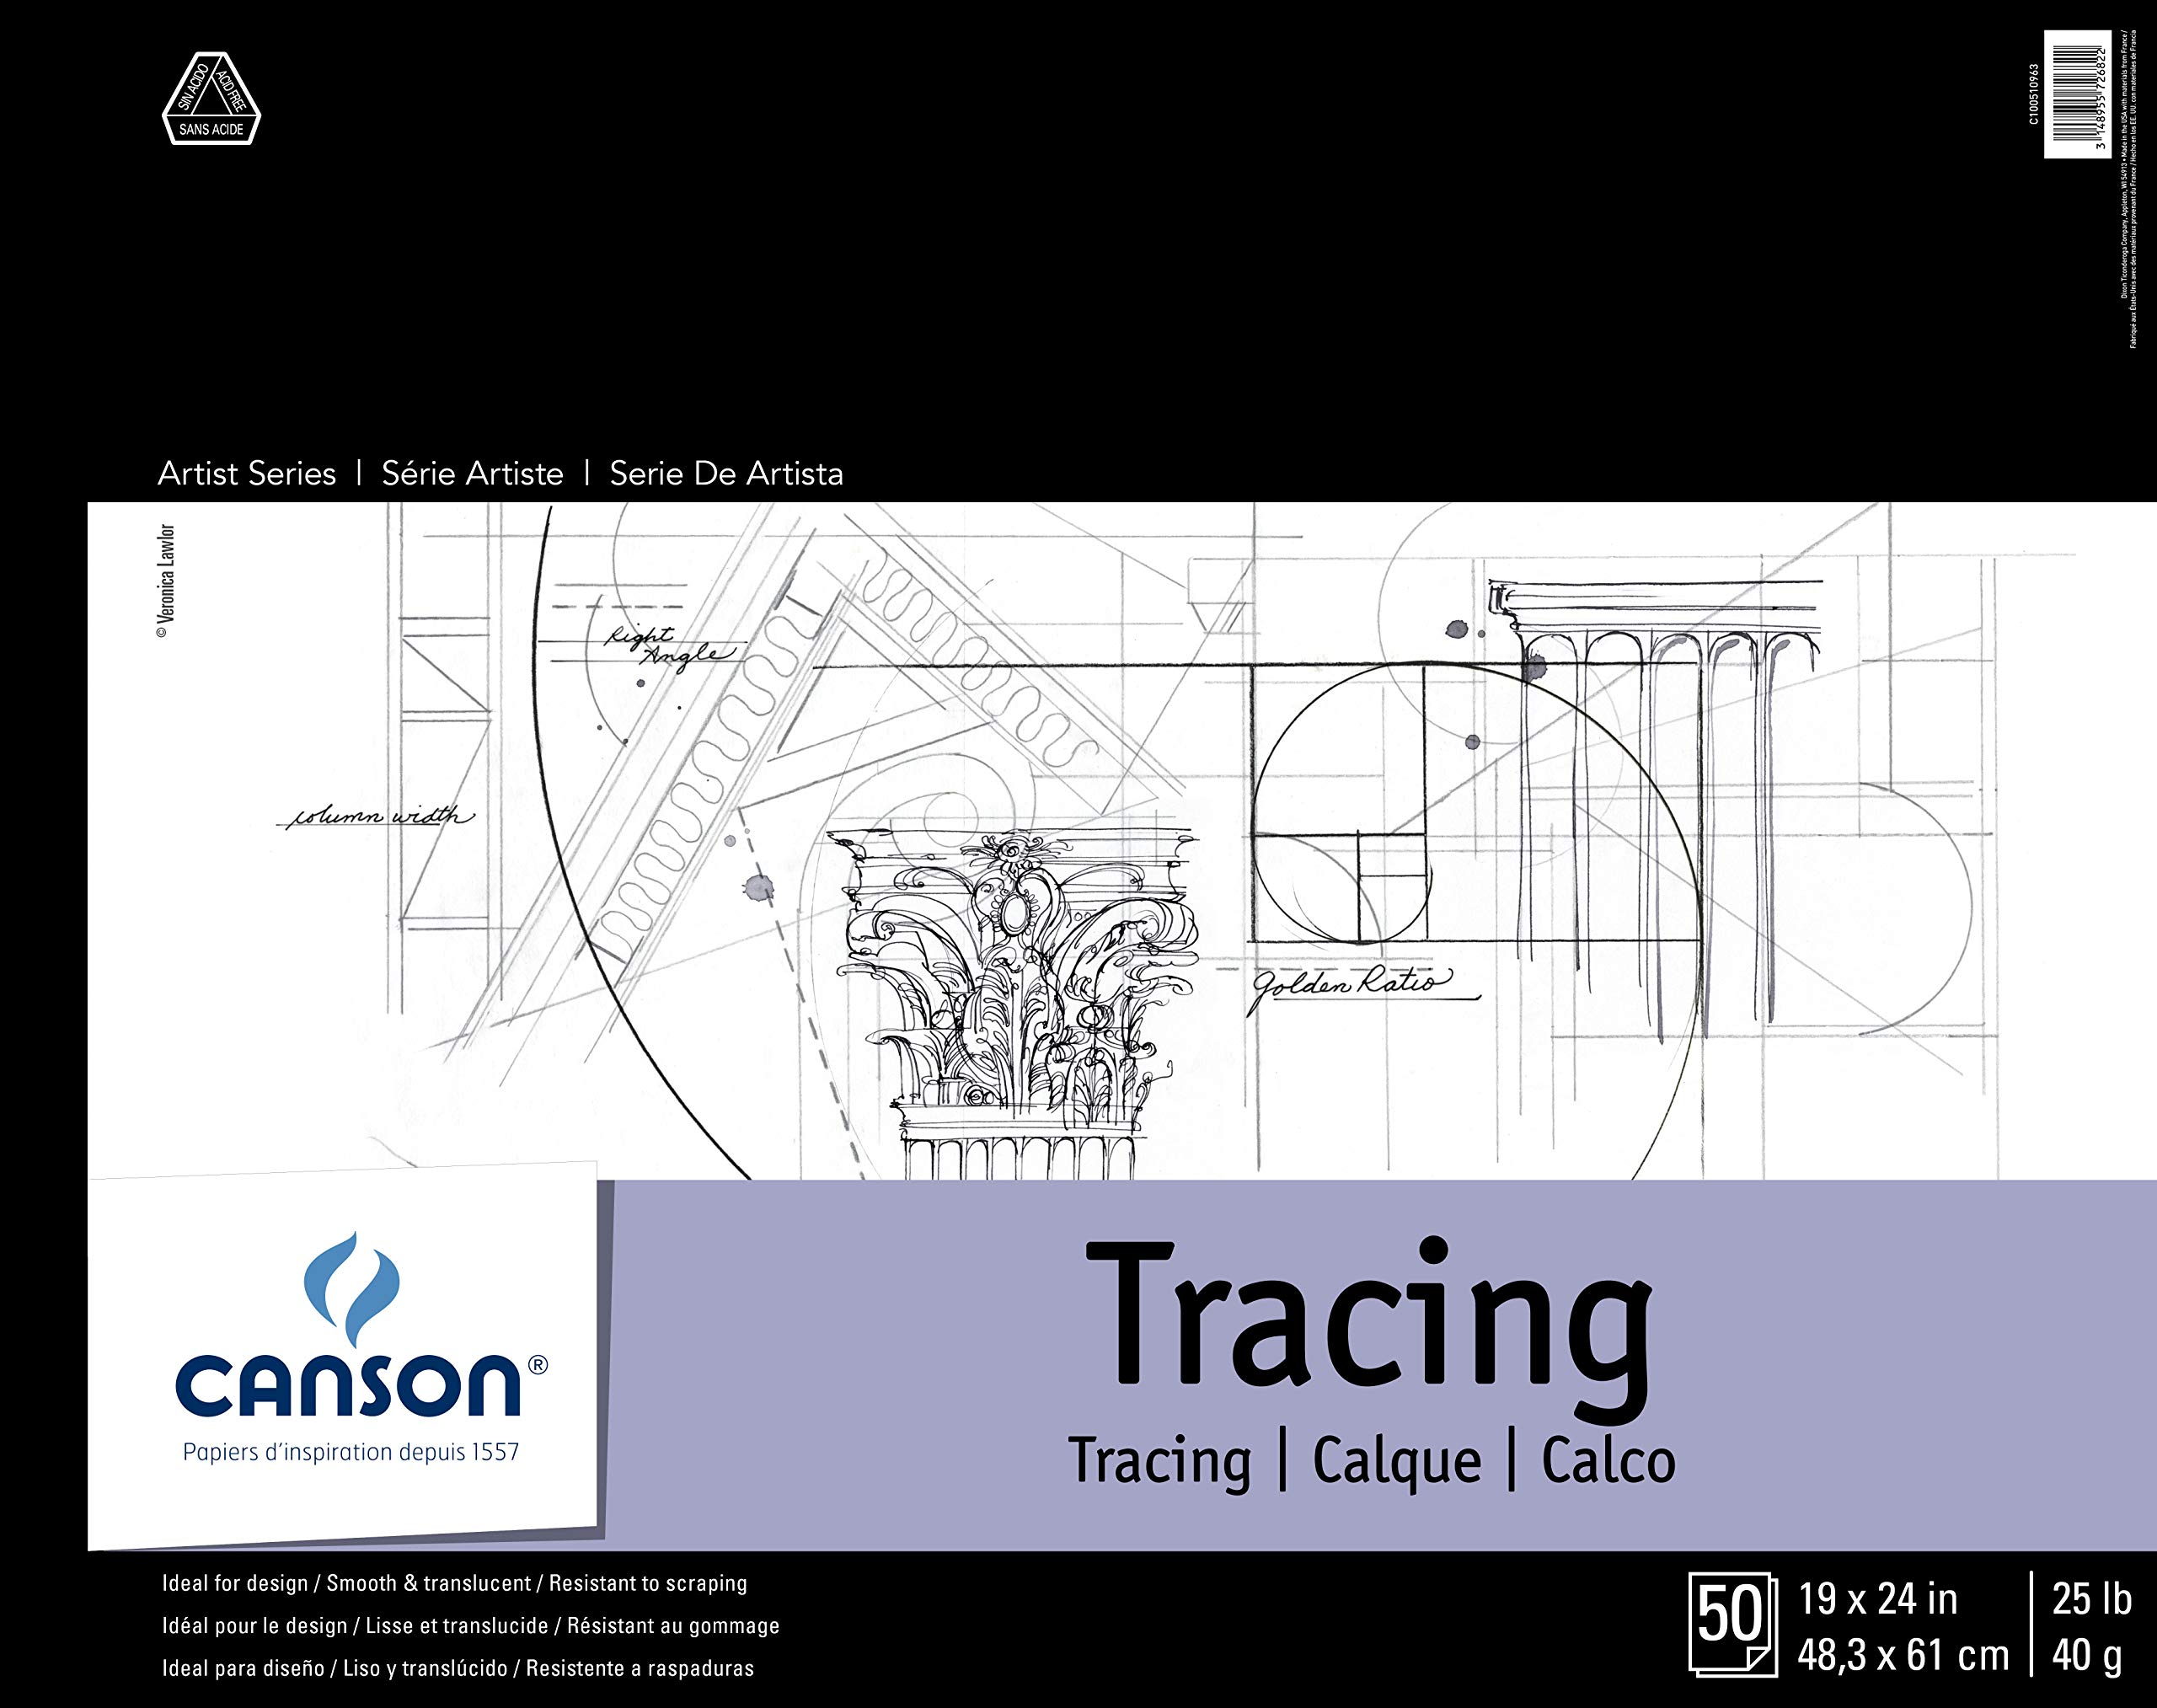 Canson 702324 Canson Tracing Paper Pad, 19 X 24-Inch, 50 Sheets by Canson